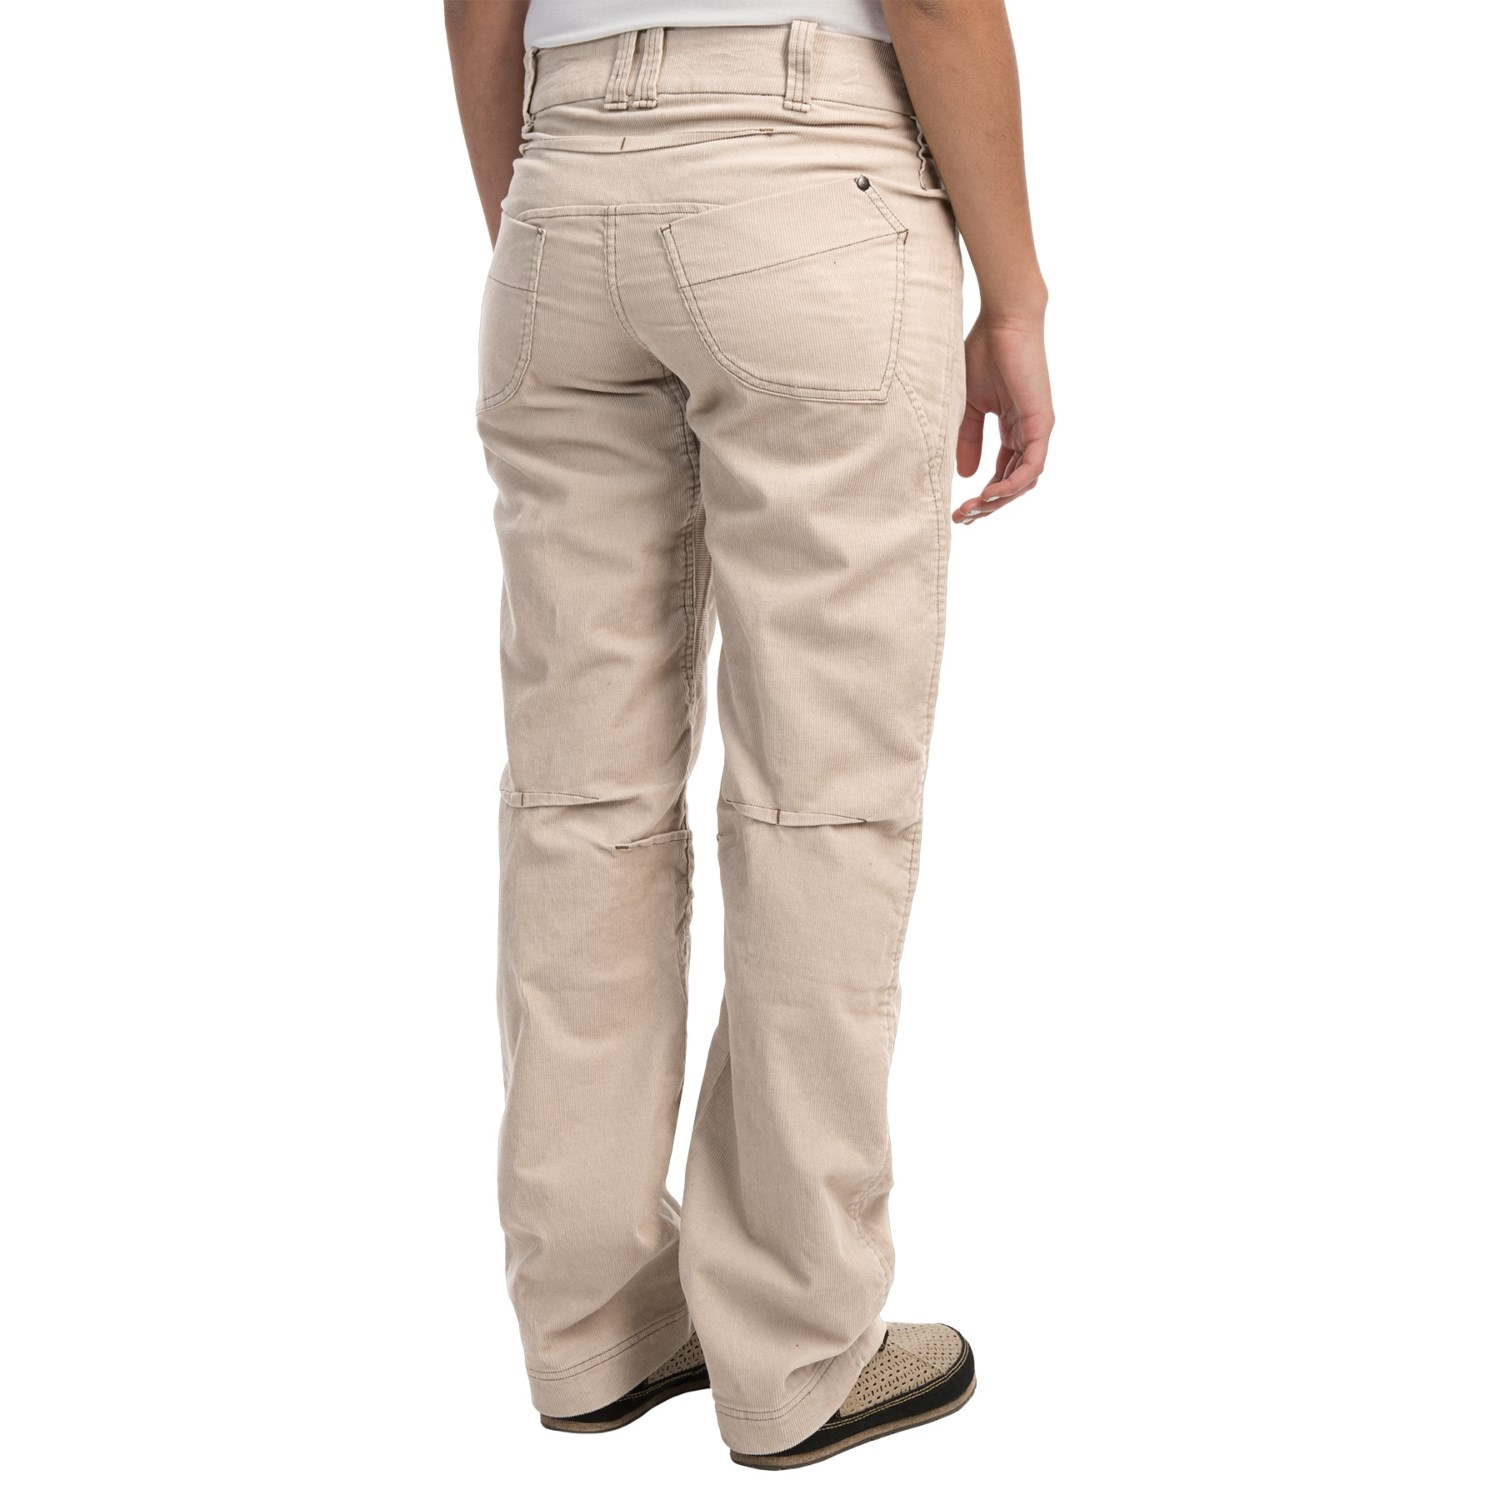 arcteryx-naely-corduroy-pants-relaxed-fit-for-women~a~9653v_3~1500.2.jpg